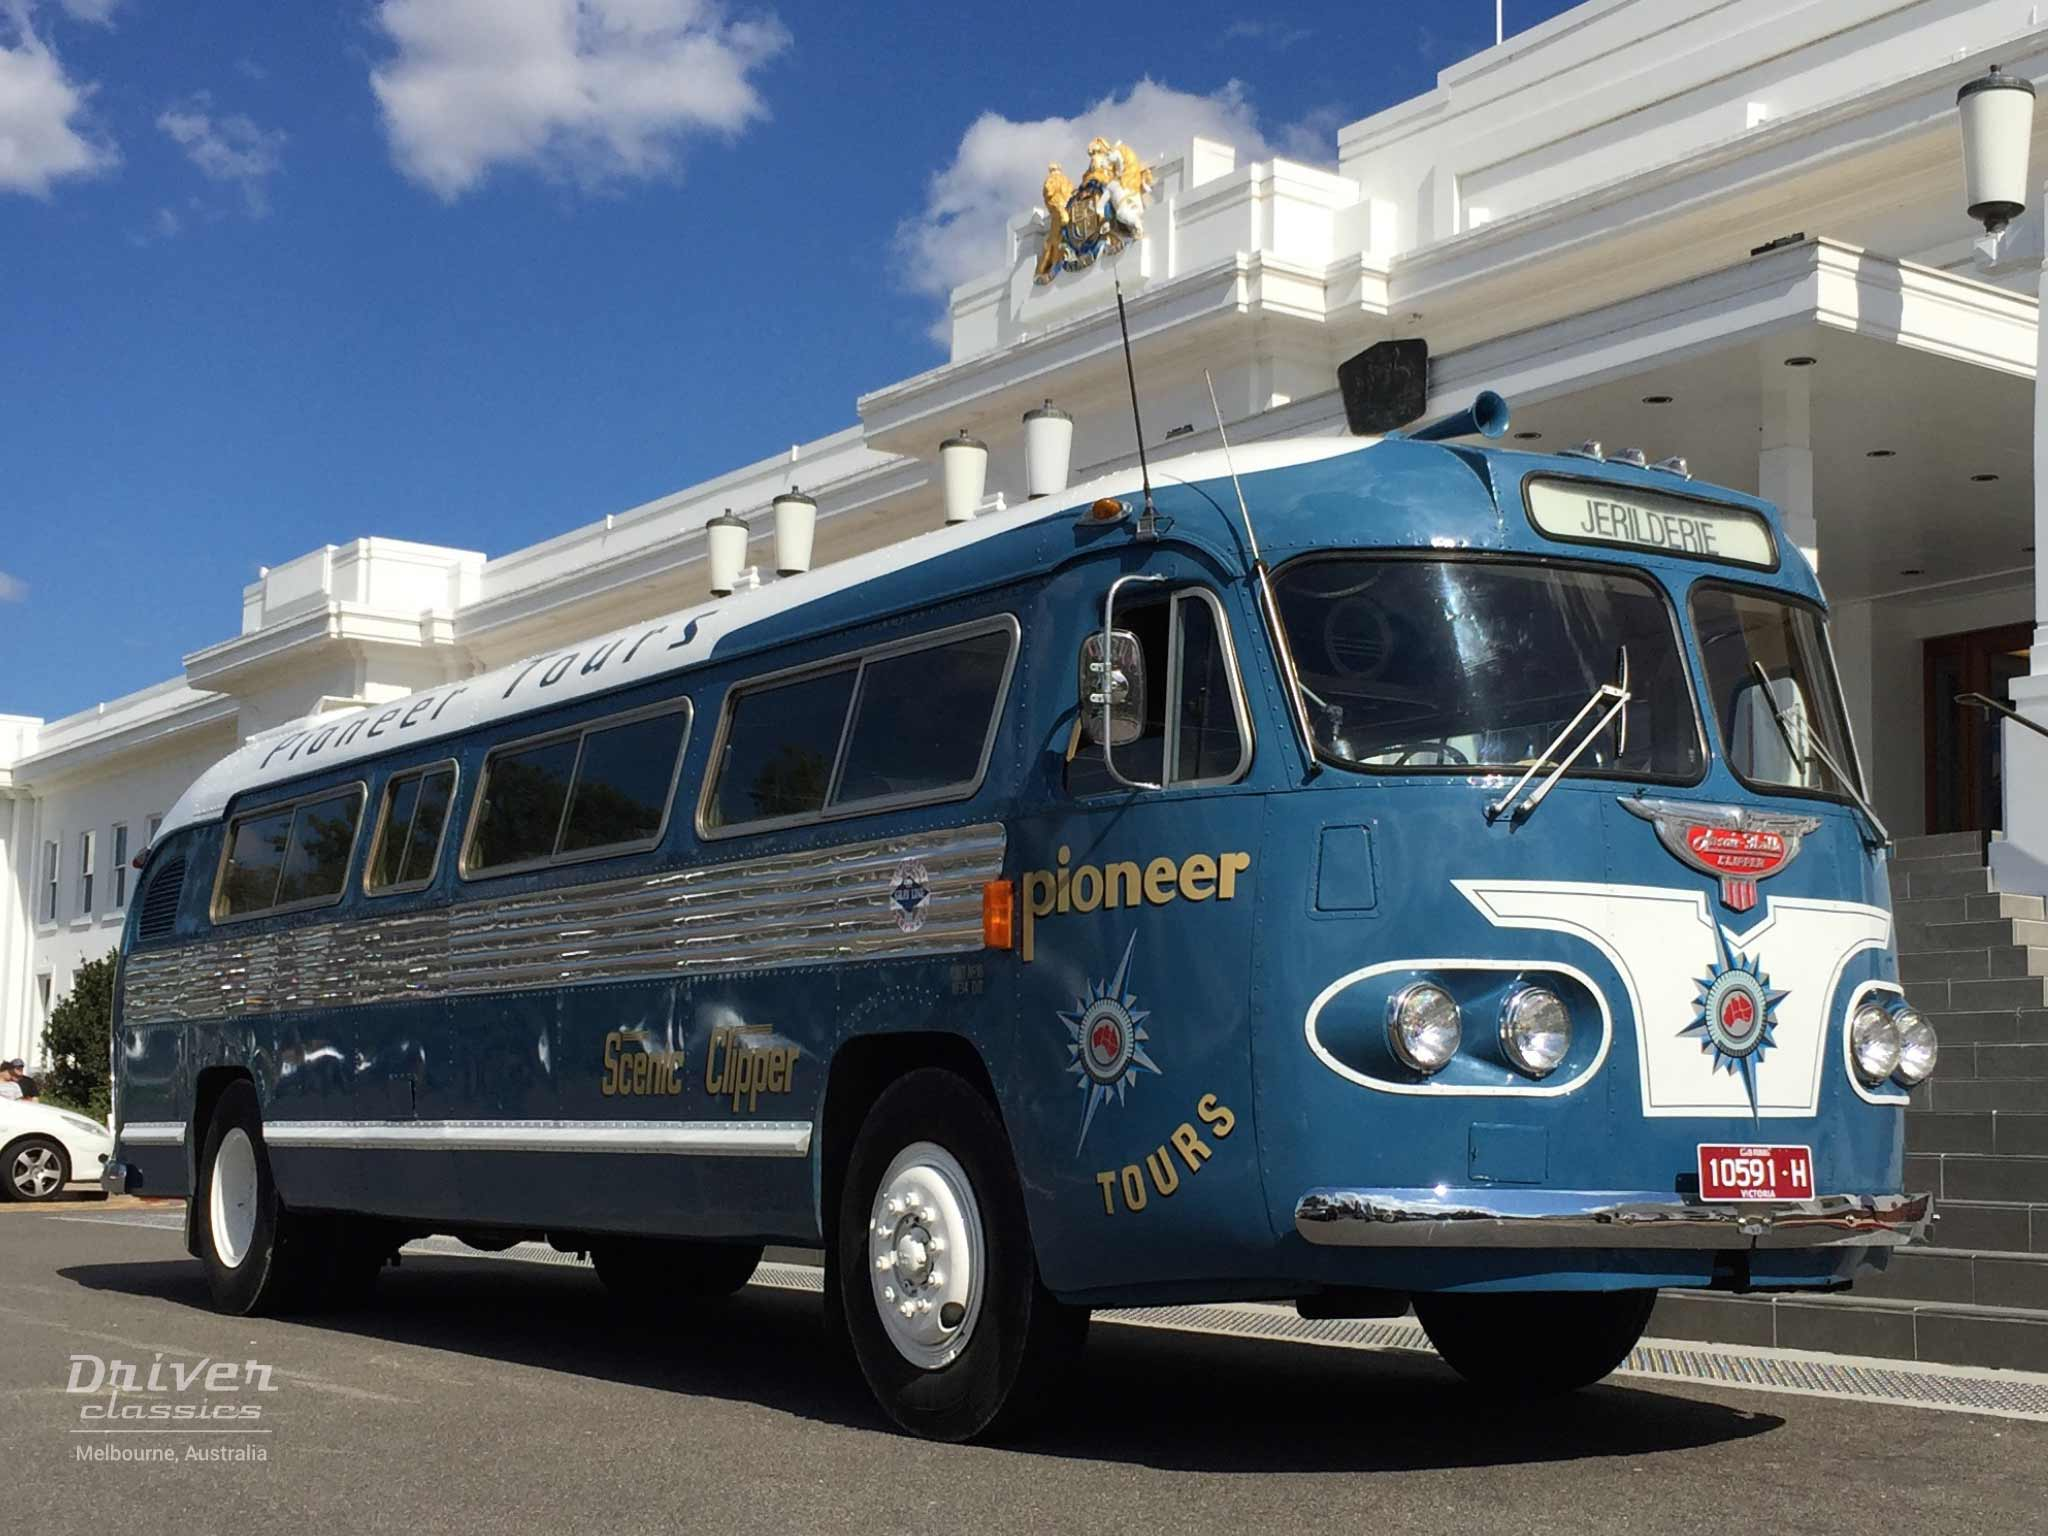 Flxible Clipper bus (1954 Model) at Old Parliament House in Canberra